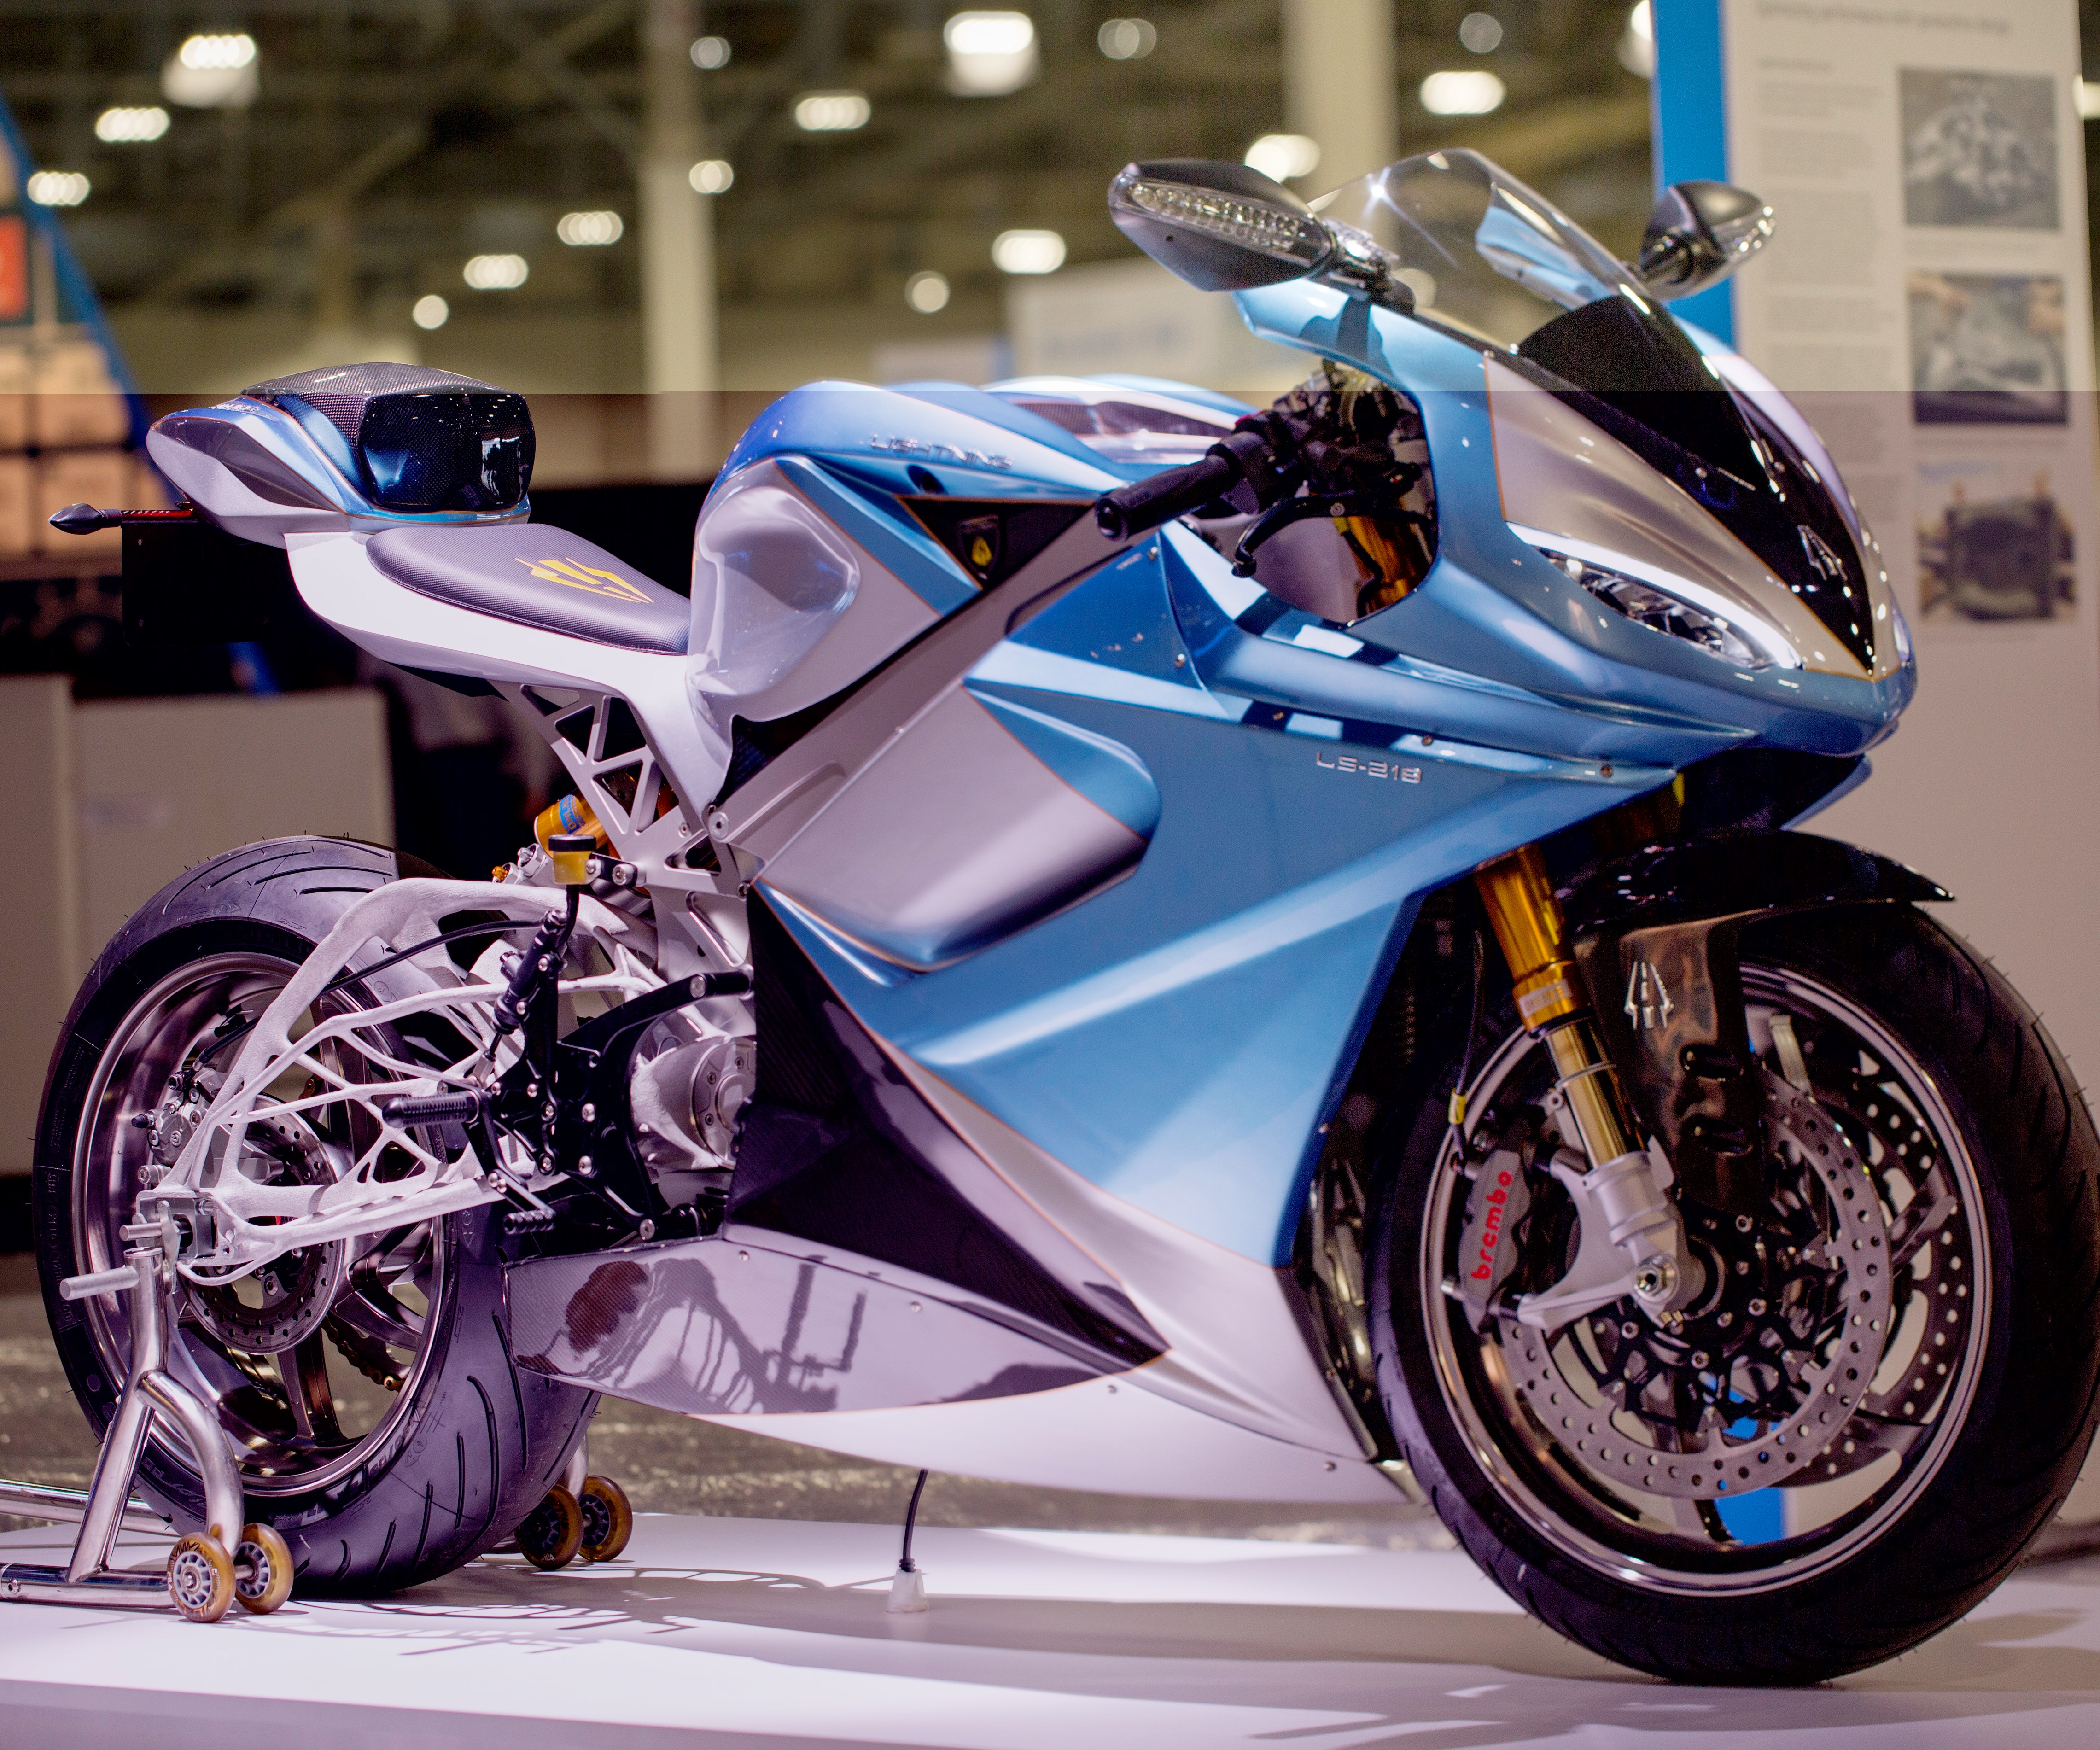 Autodesk generative design software for Lightning Motorcycles